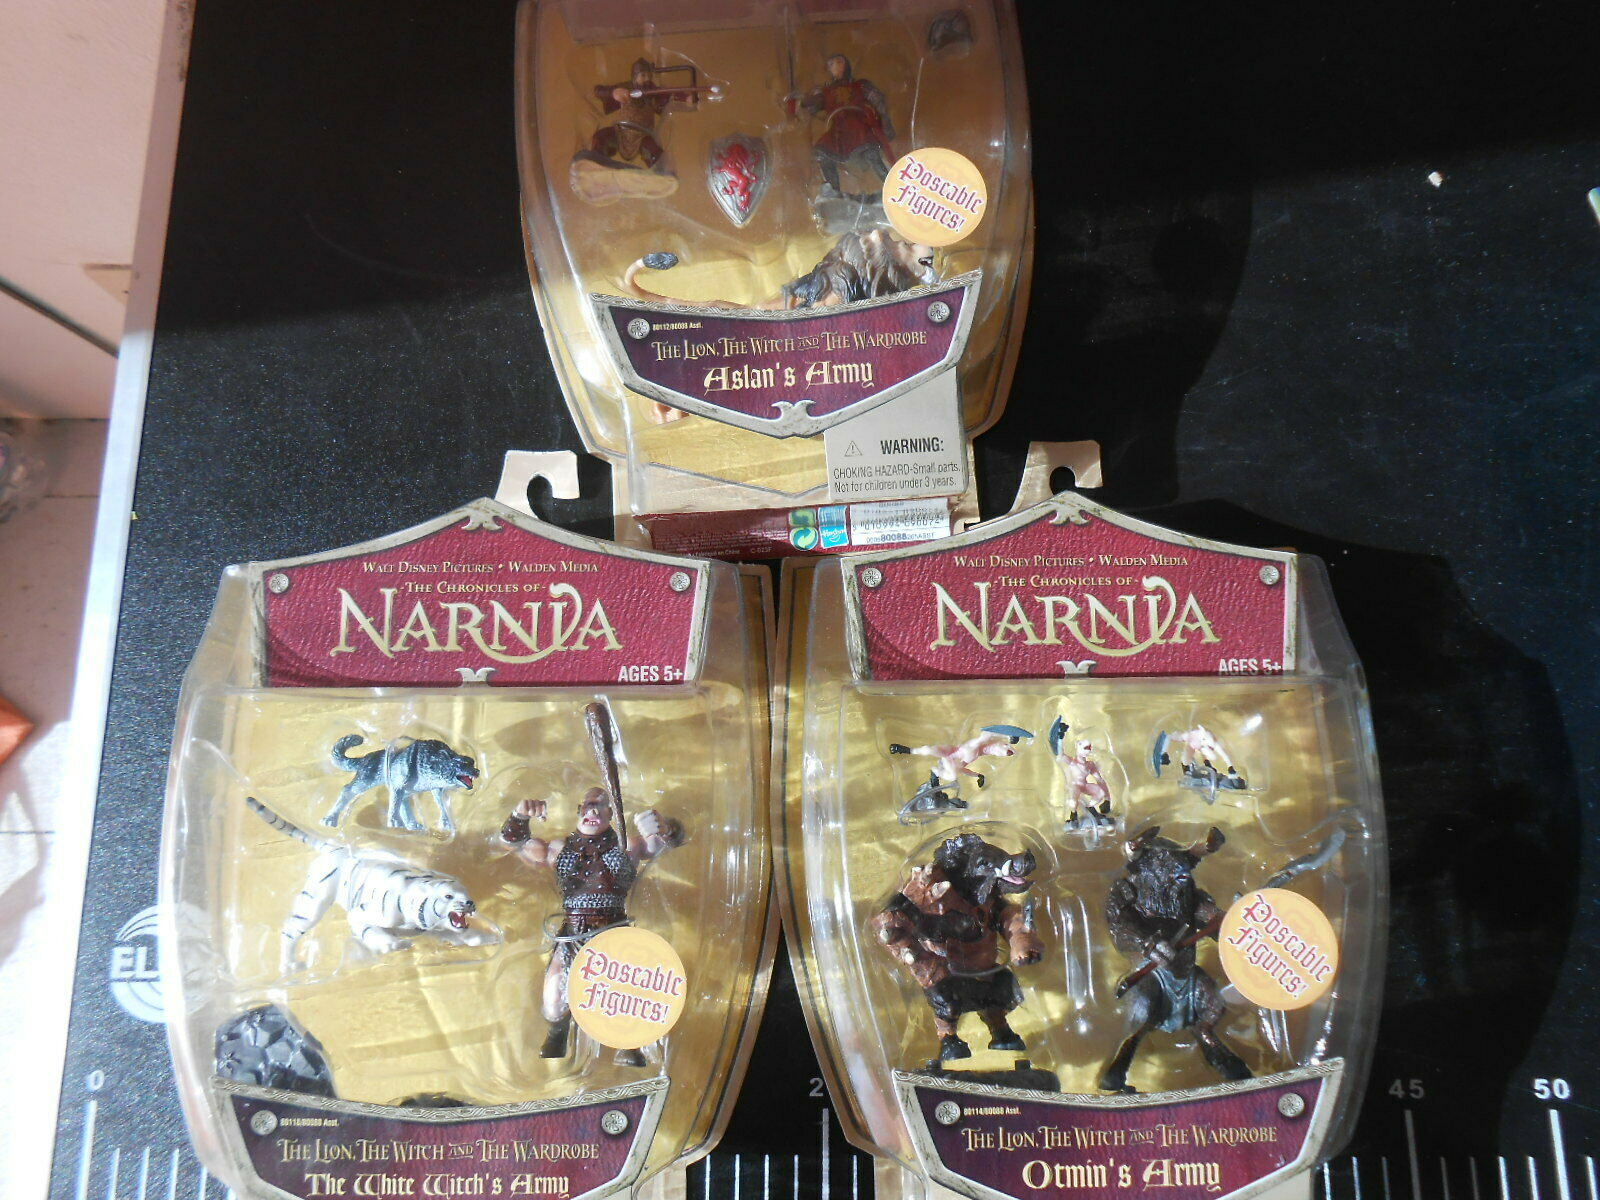 CHRONICLES OF NARNIA Poseable Figures Lion Witch Wardrobe Armies Army